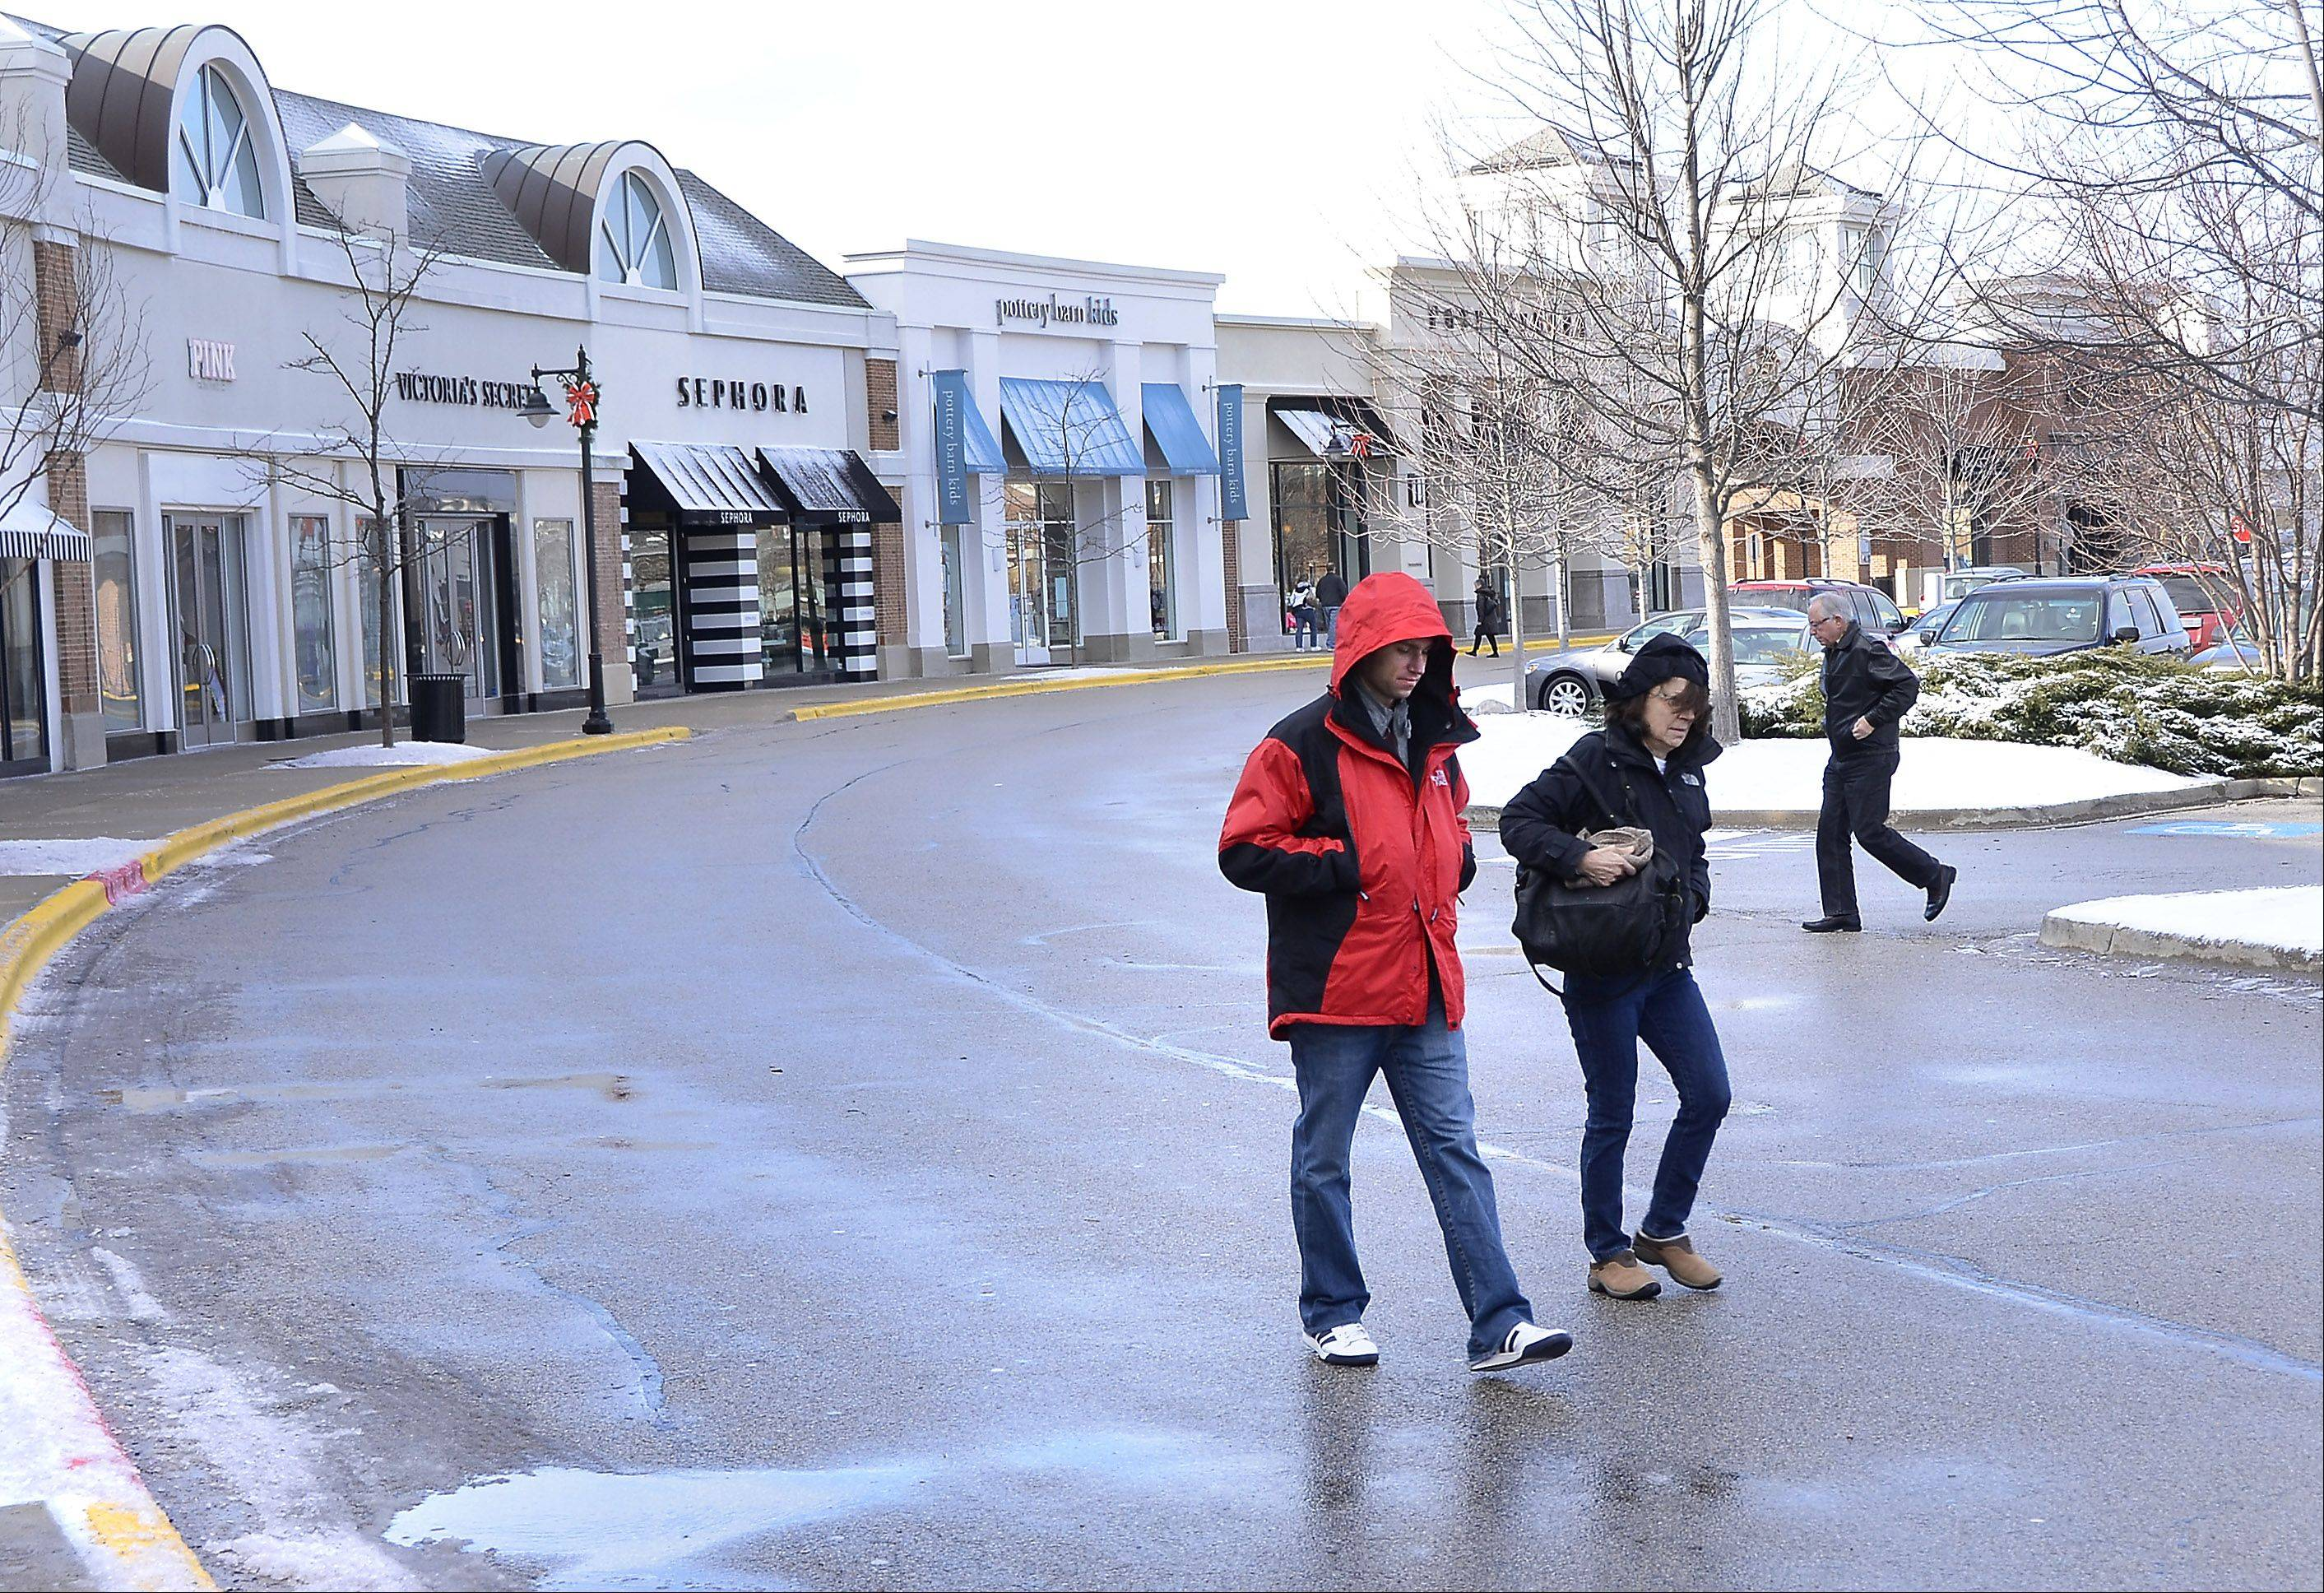 Shoppers at Deer Park Town Center kept hands in their pockets and heads down as they hustled to and from stores Friday afternoon. Temperatures in the 20s and winds gusting to 40 mph. were fitting for the first day of winter.